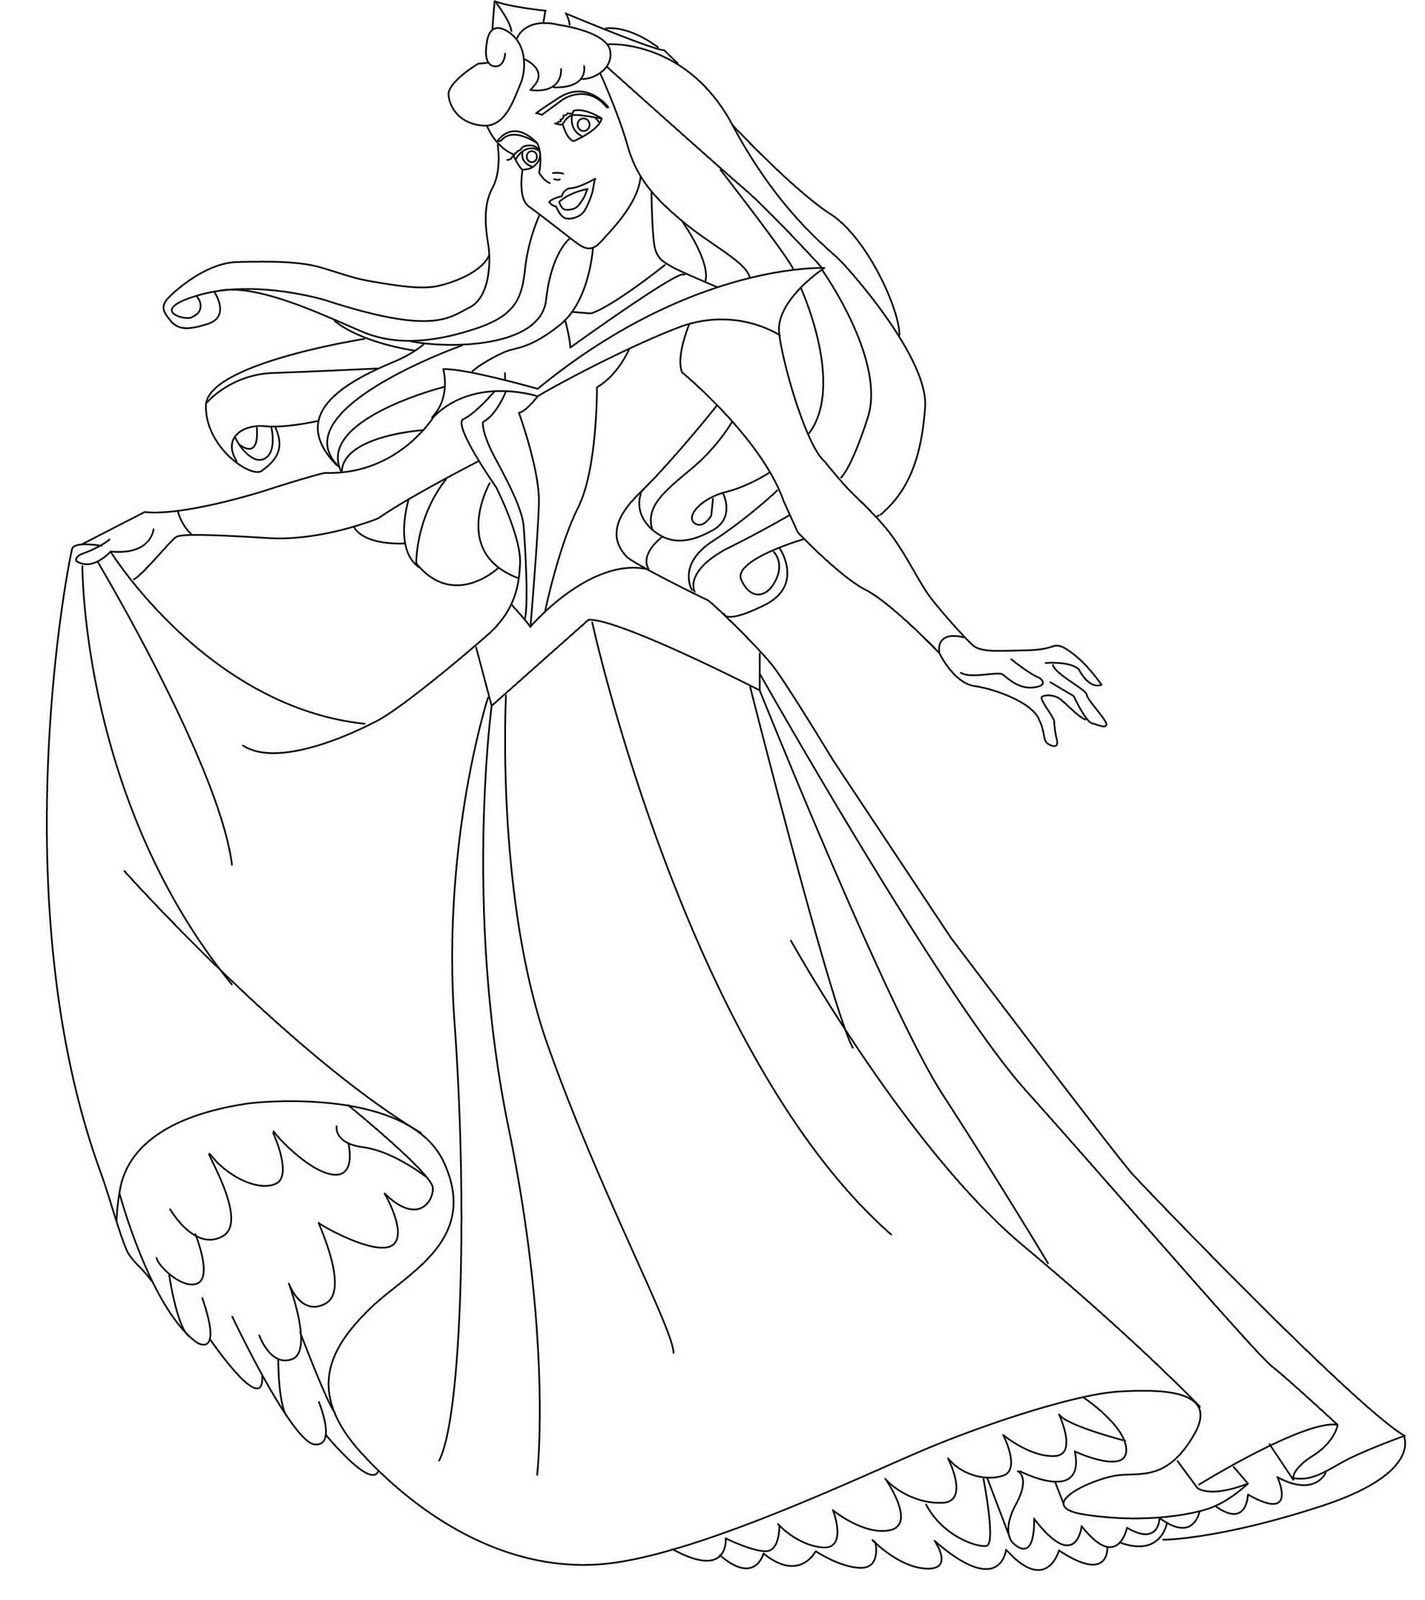 Dornröschen Disney Aurora Ausmalbilder : Princess Coloring Pages Sleeping Beauty Coloring Pages Pinterest